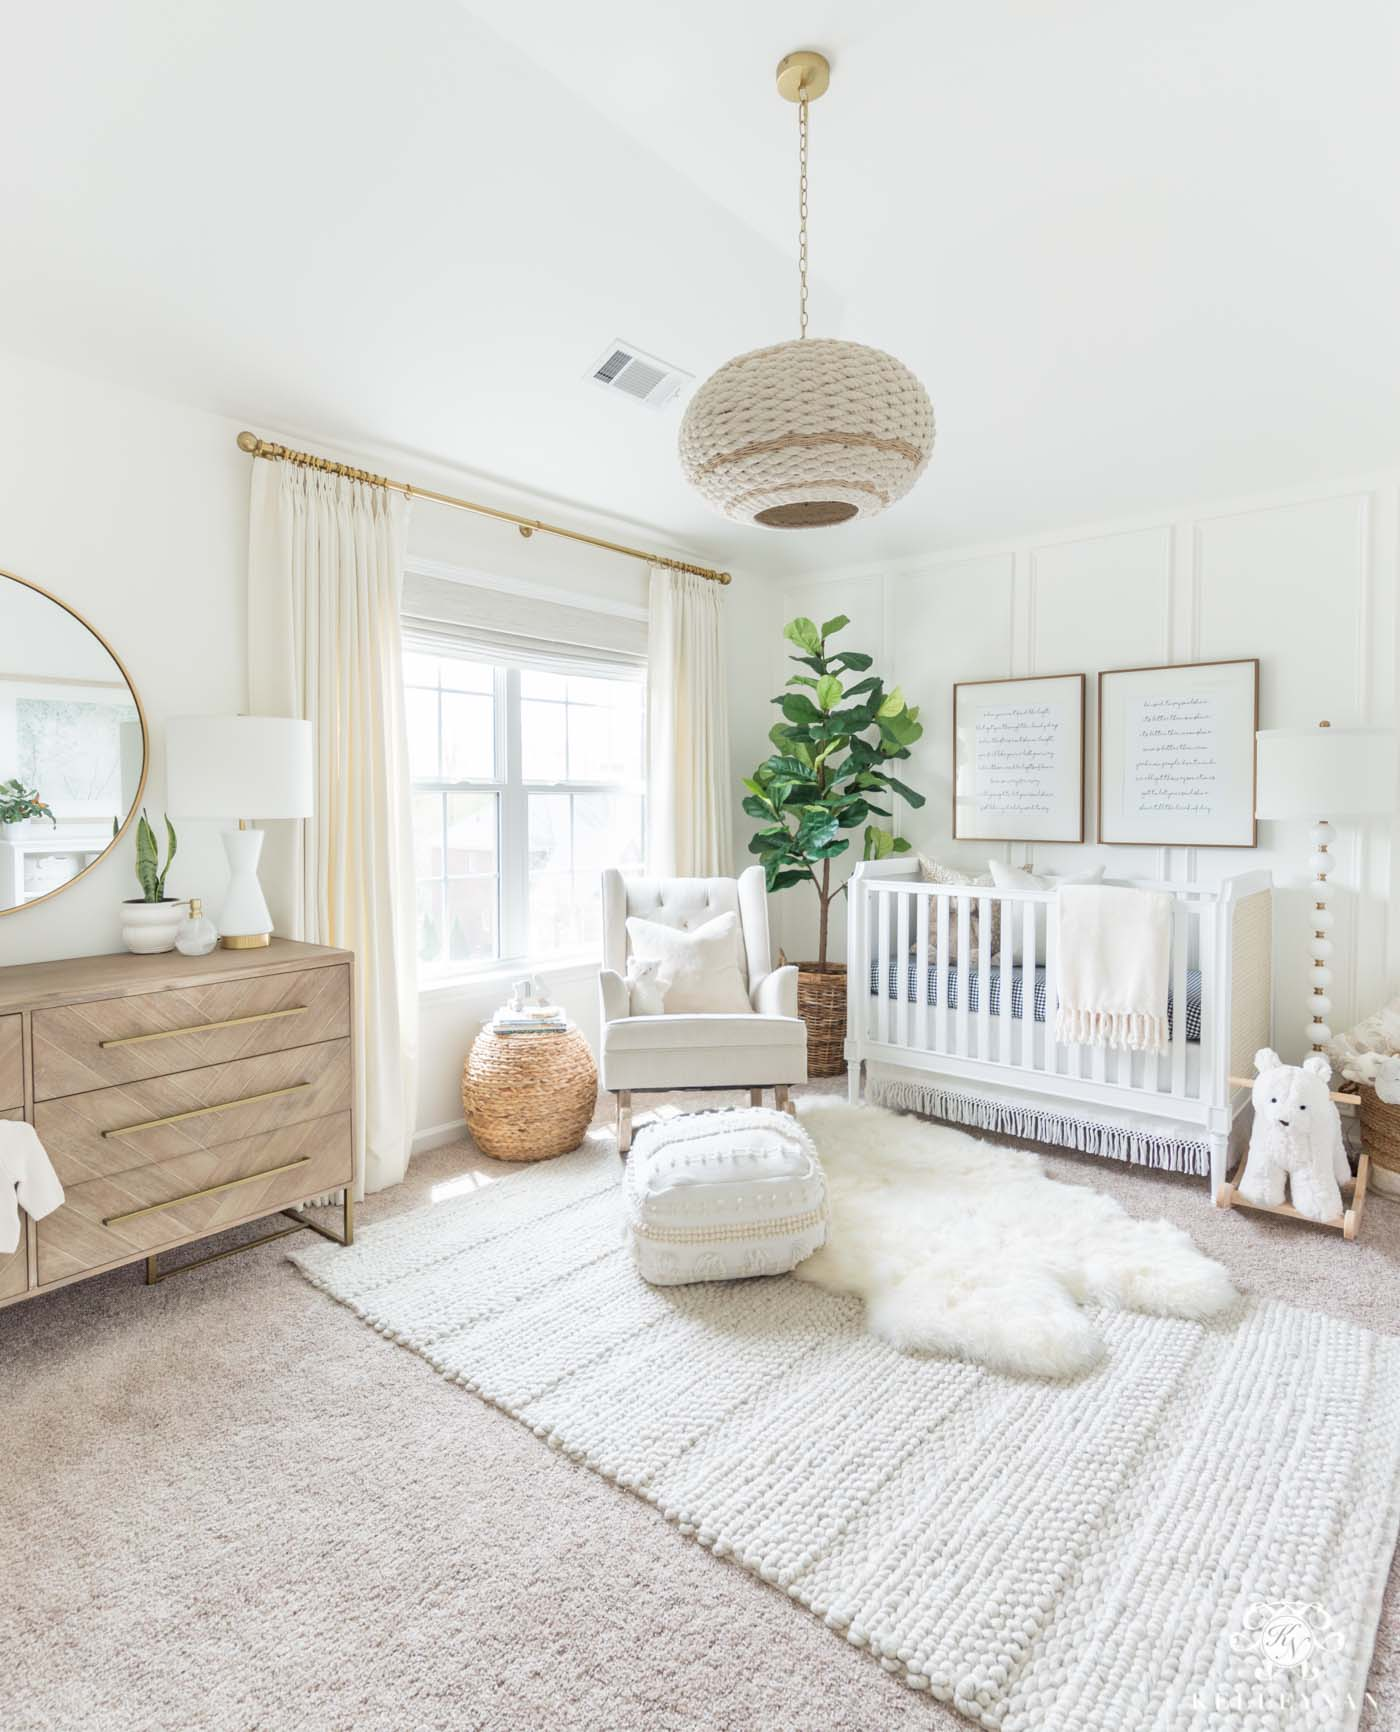 Beautiful gender neutral nursery design with white walls and woodland decor - soft, modern, and a little bohemian